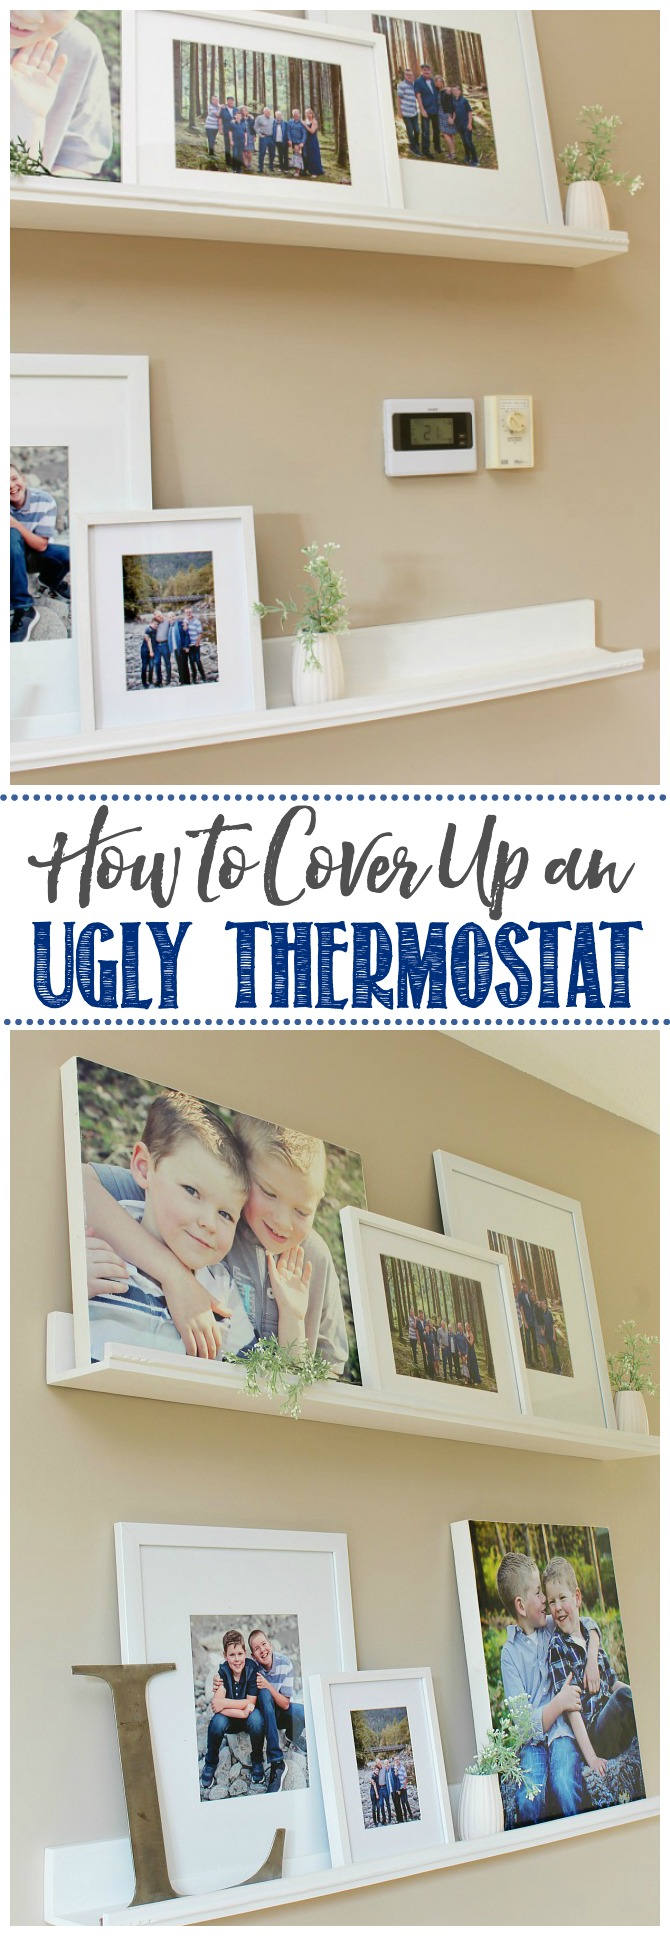 Before and after of a photo gallery used to cover an ugly thermostat.